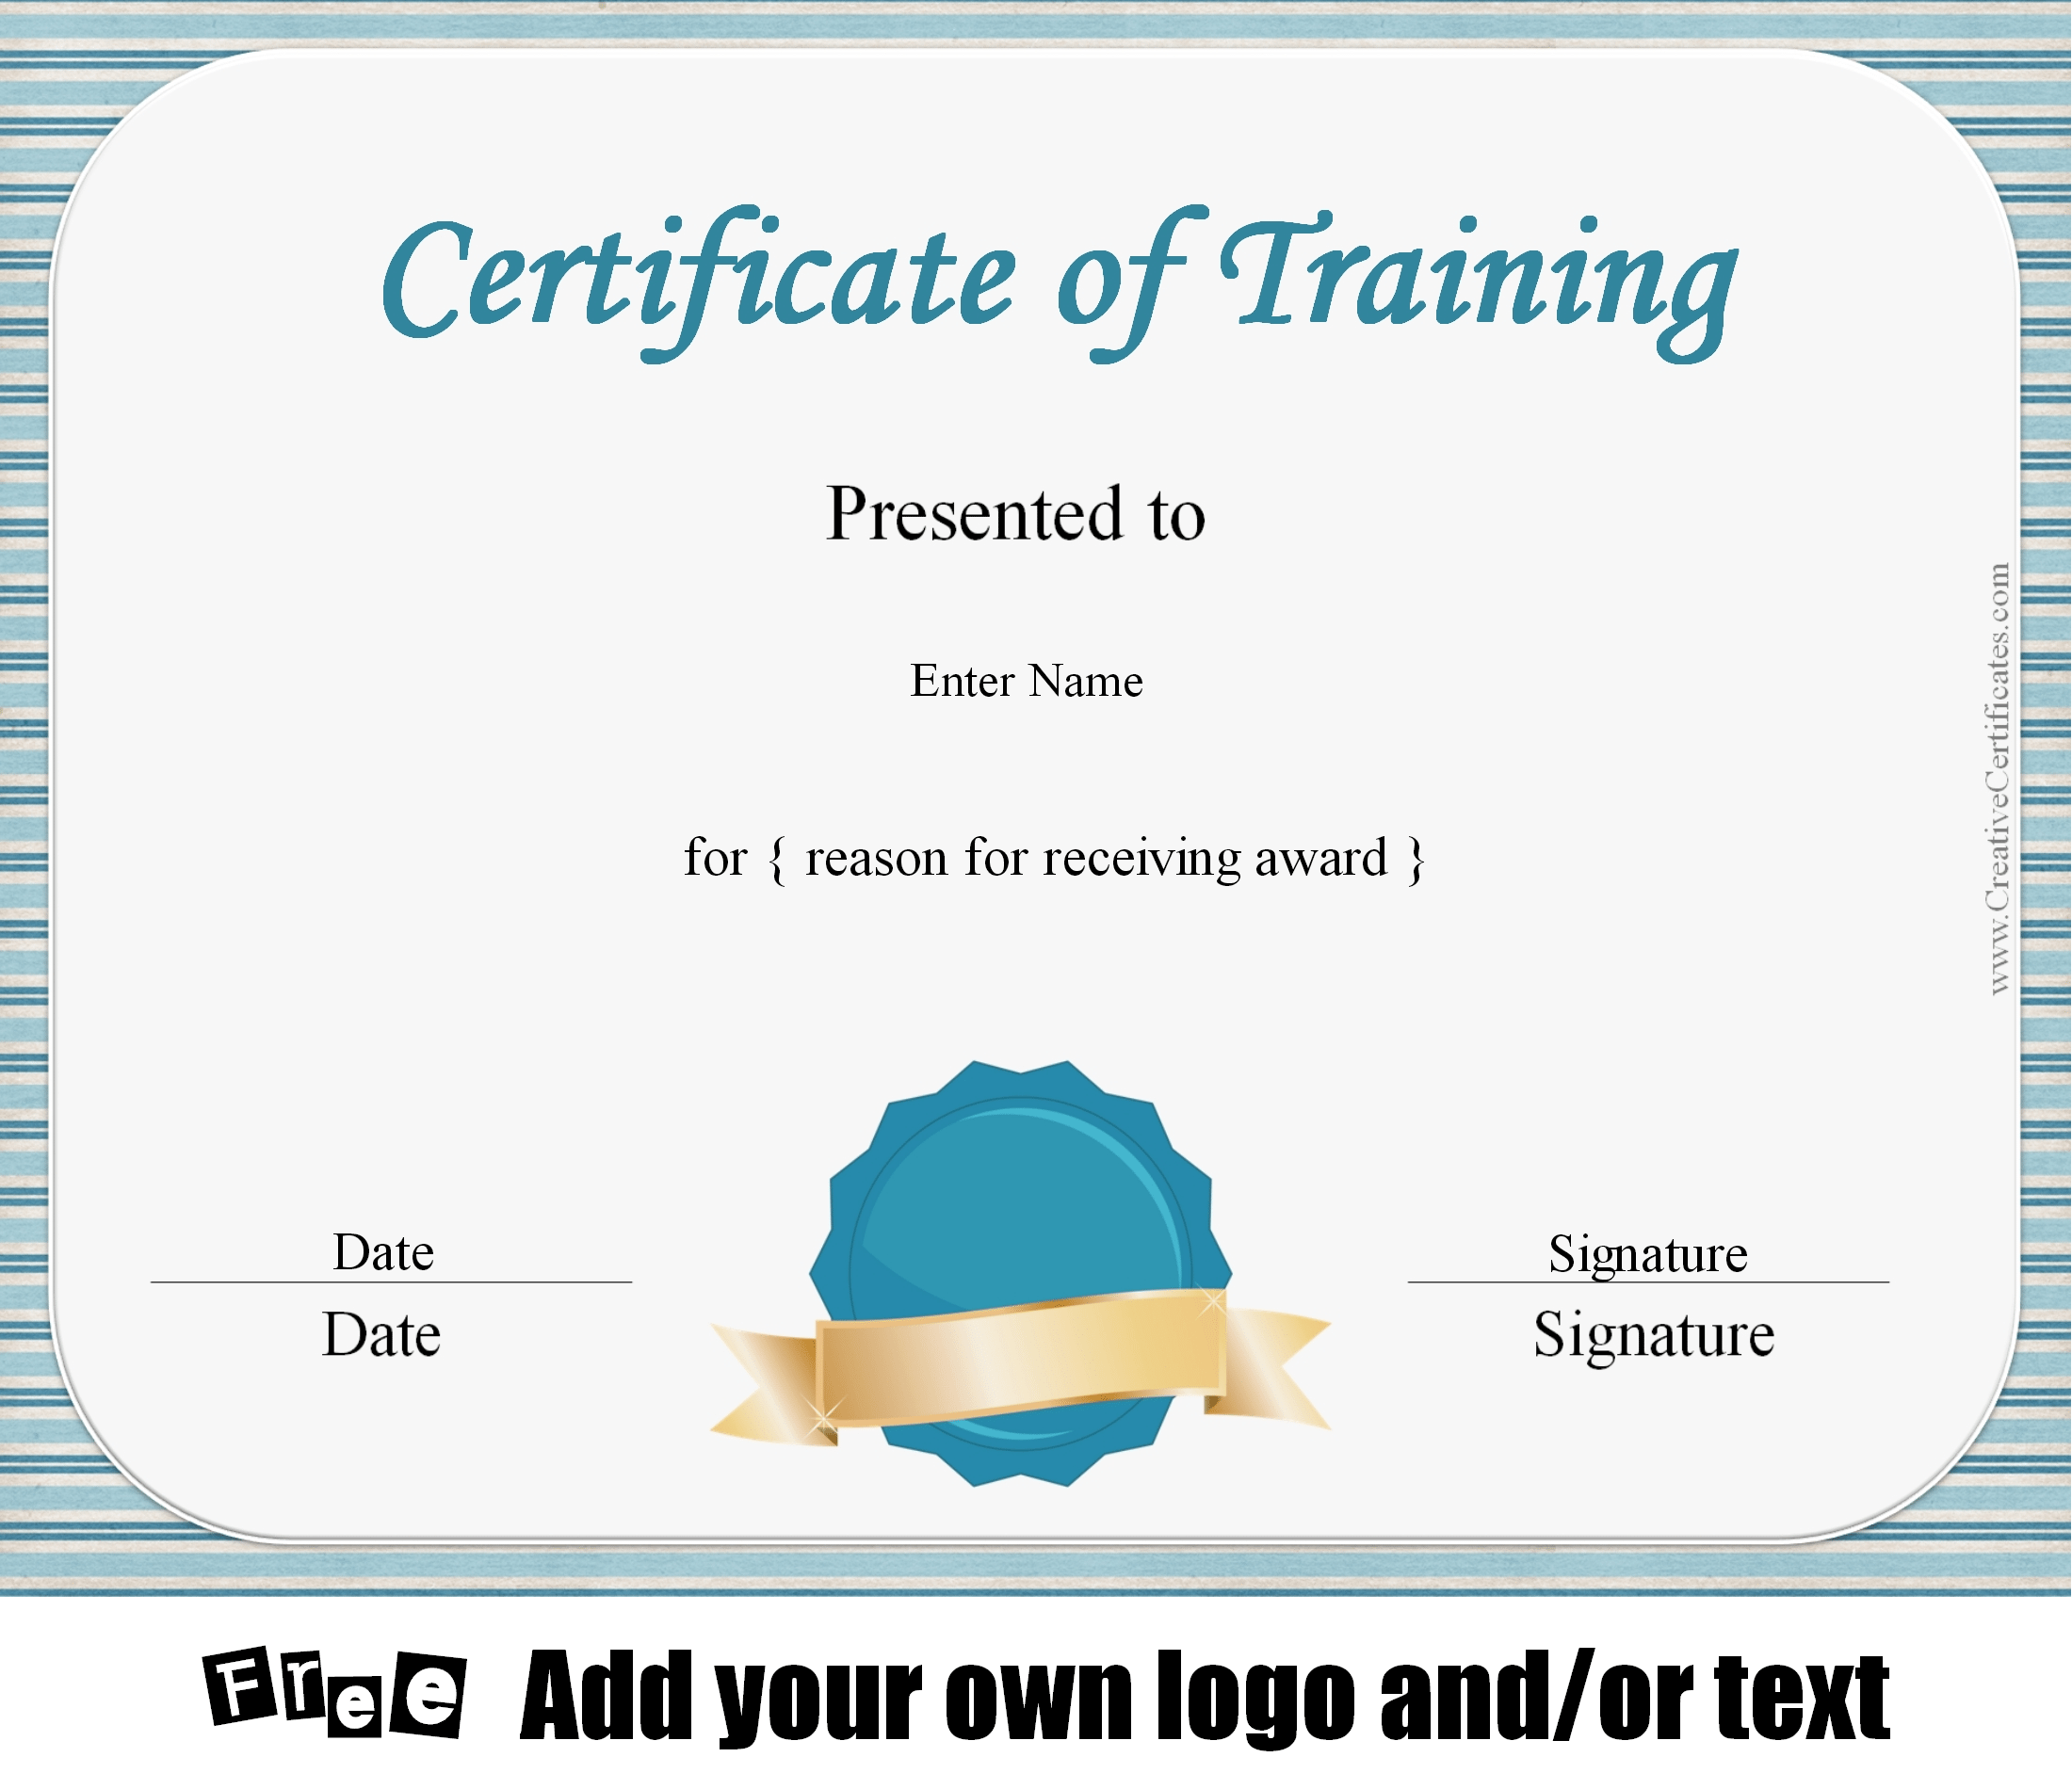 Free certificate of training template customizable for Training certificate template free